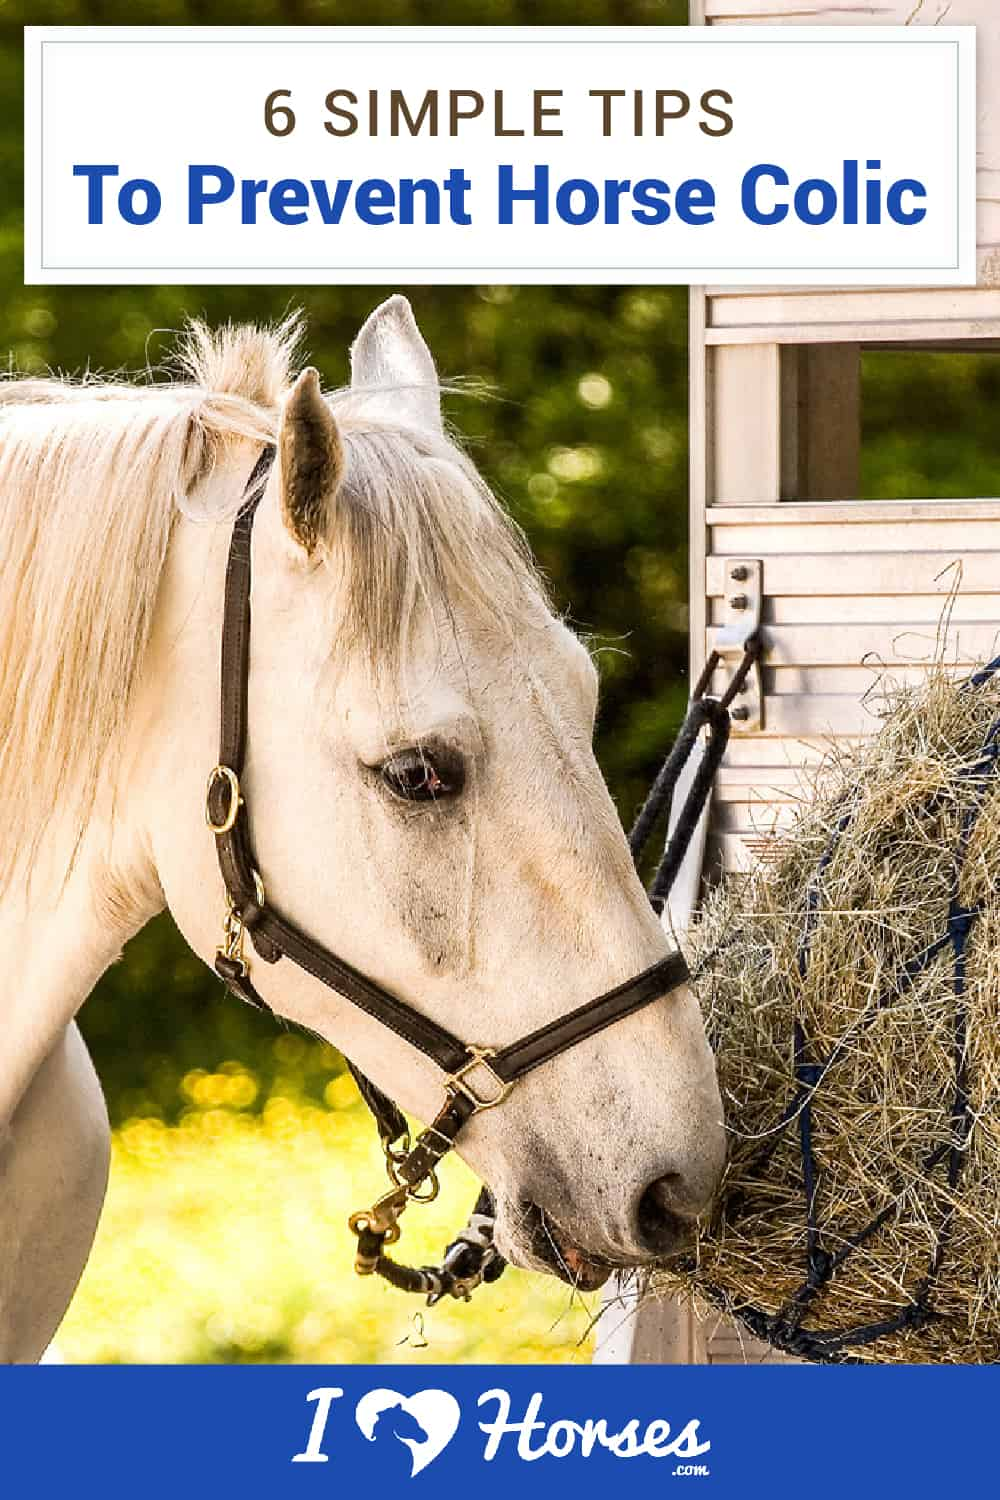 horse eating hay, tips to prevent horse colic